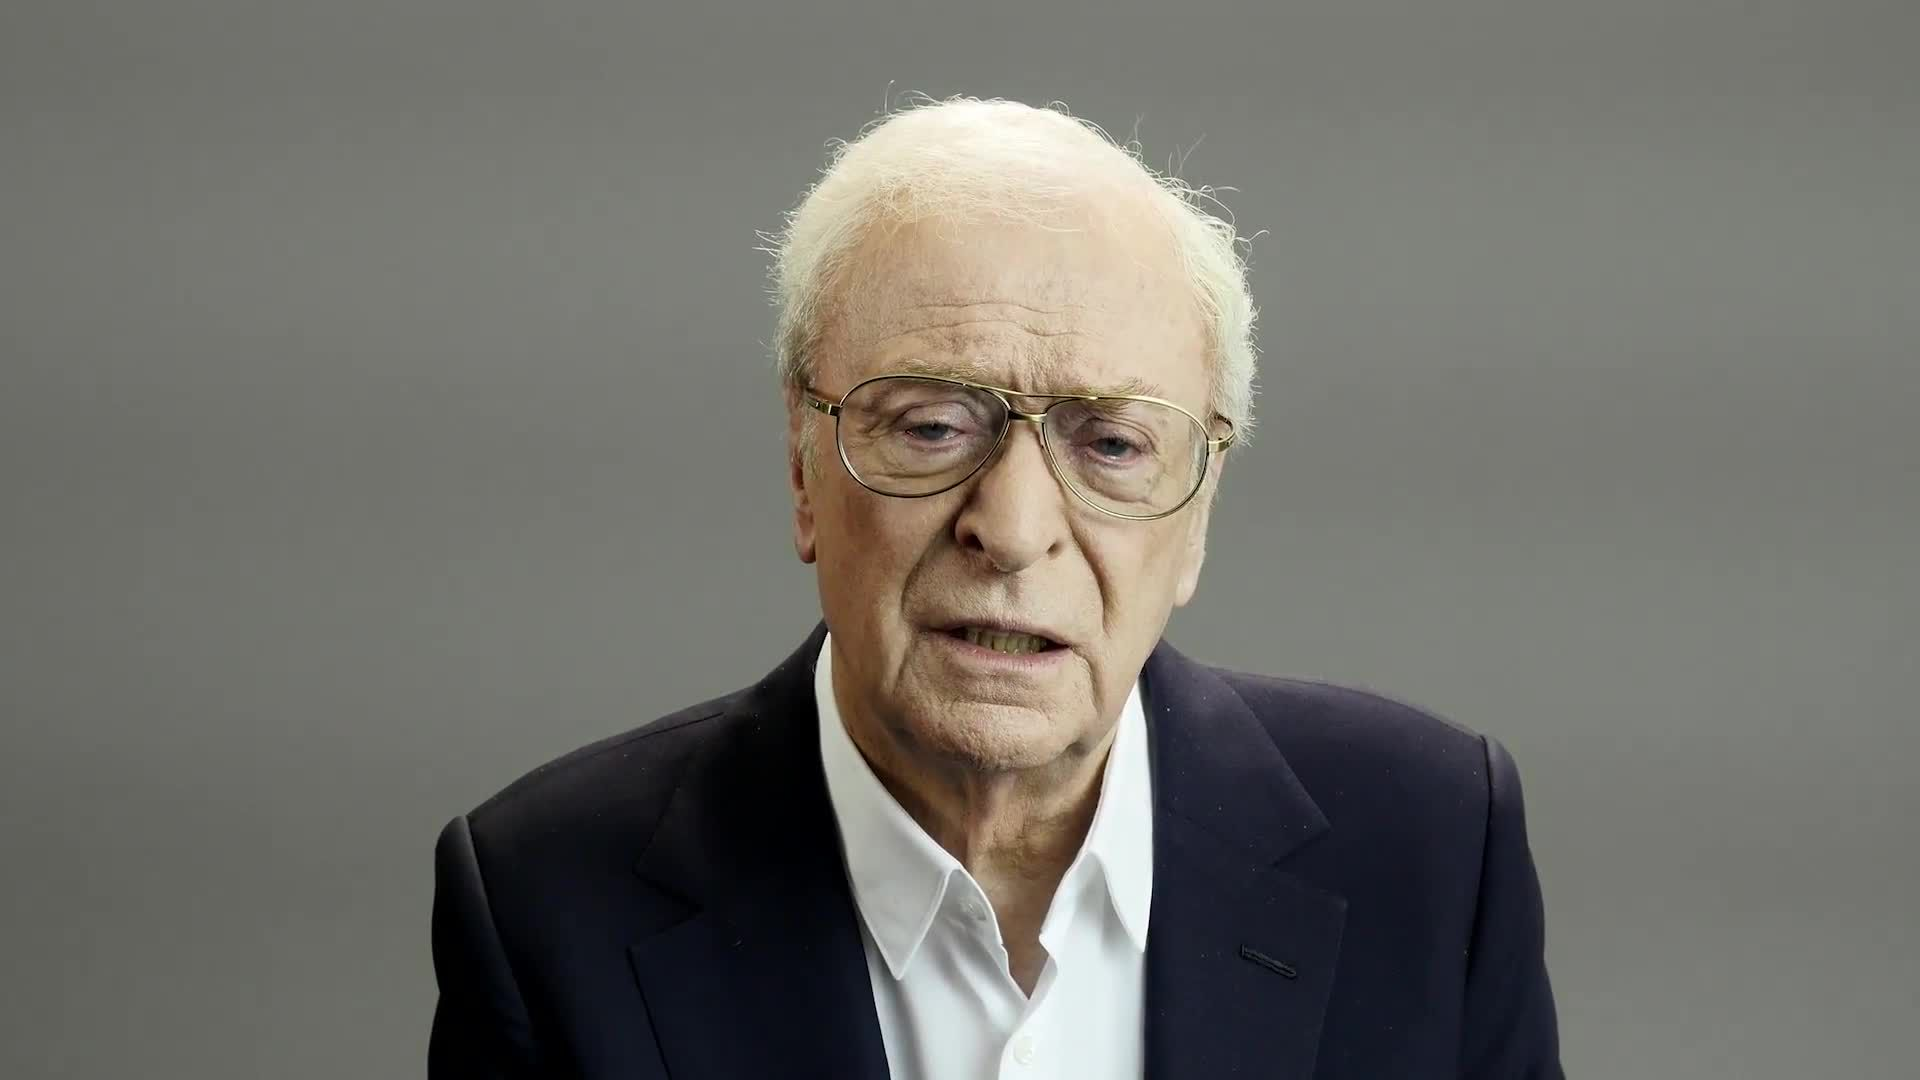 70 Years Later, Michael Caine Still Remembers His Poignant 11th Birthday